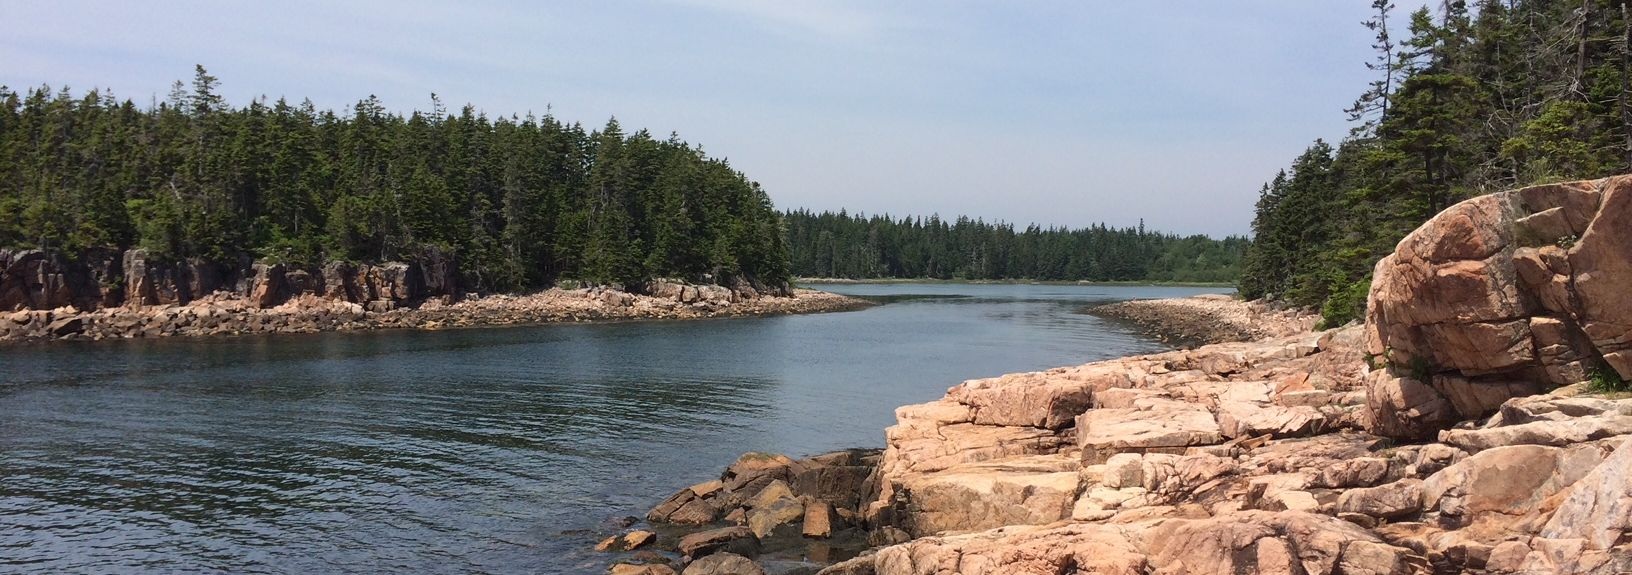 Lamoine, Maine, United States